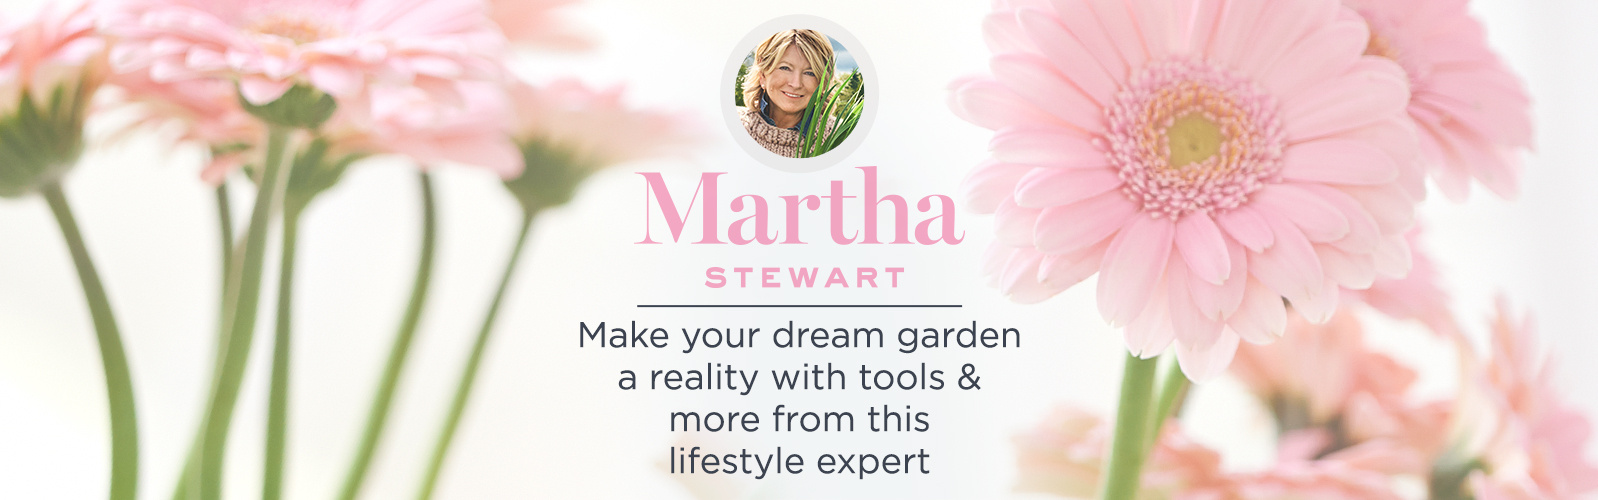 Make your dream garden a reality with tools & more from this lifestyle expert